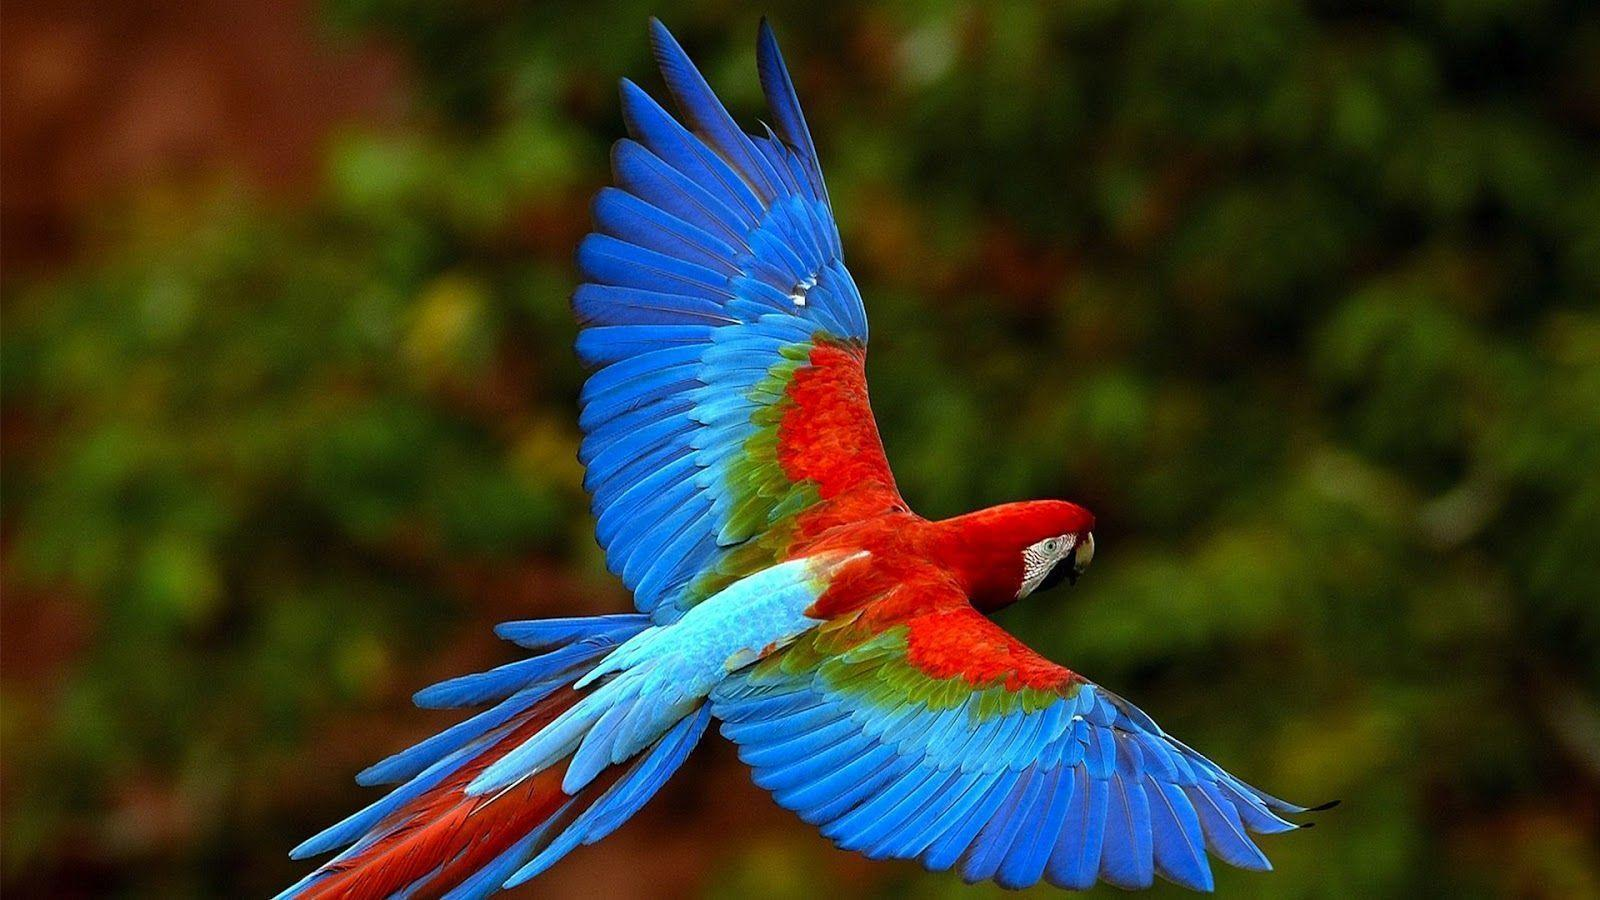 Best Picture of Macaw Parrot 2013 - SA Wallpapers